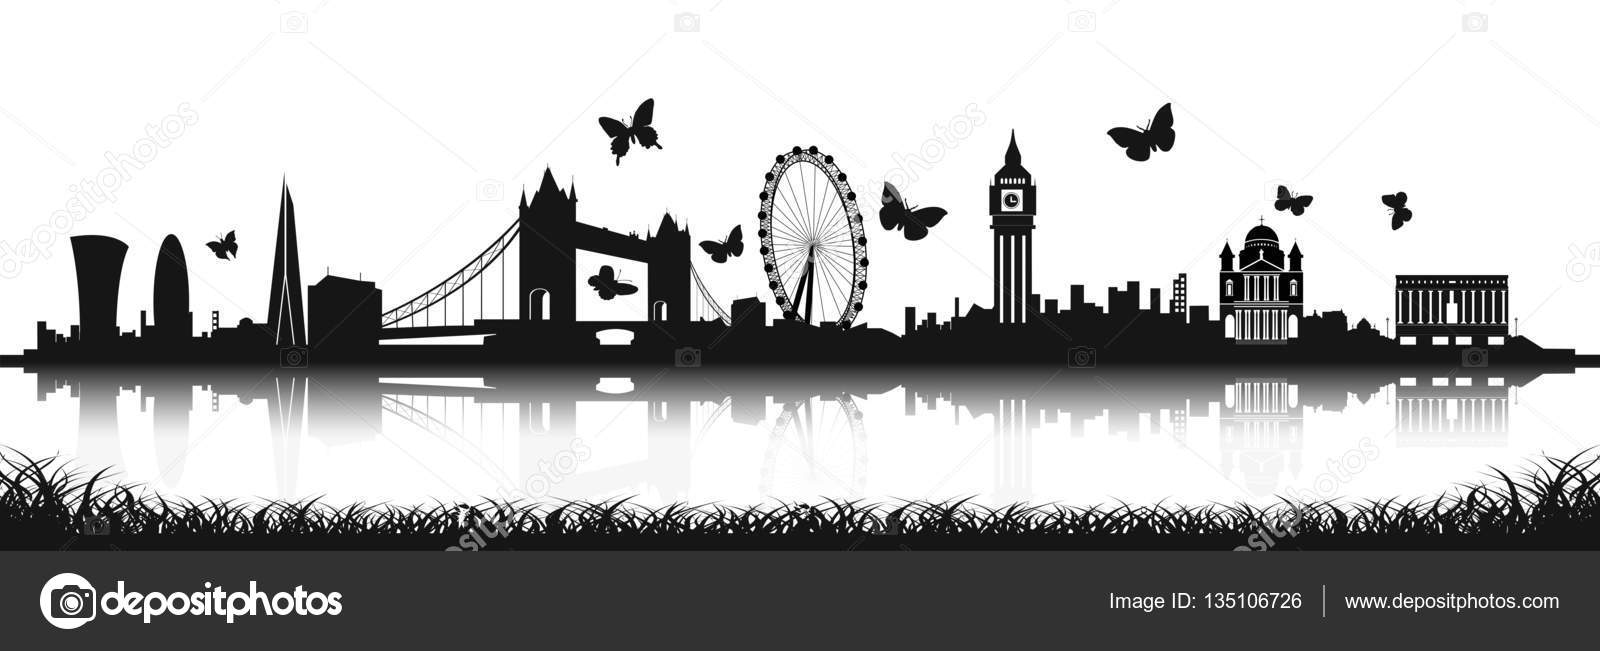 London Skyline Silhouette With Butterfly Stock Vector